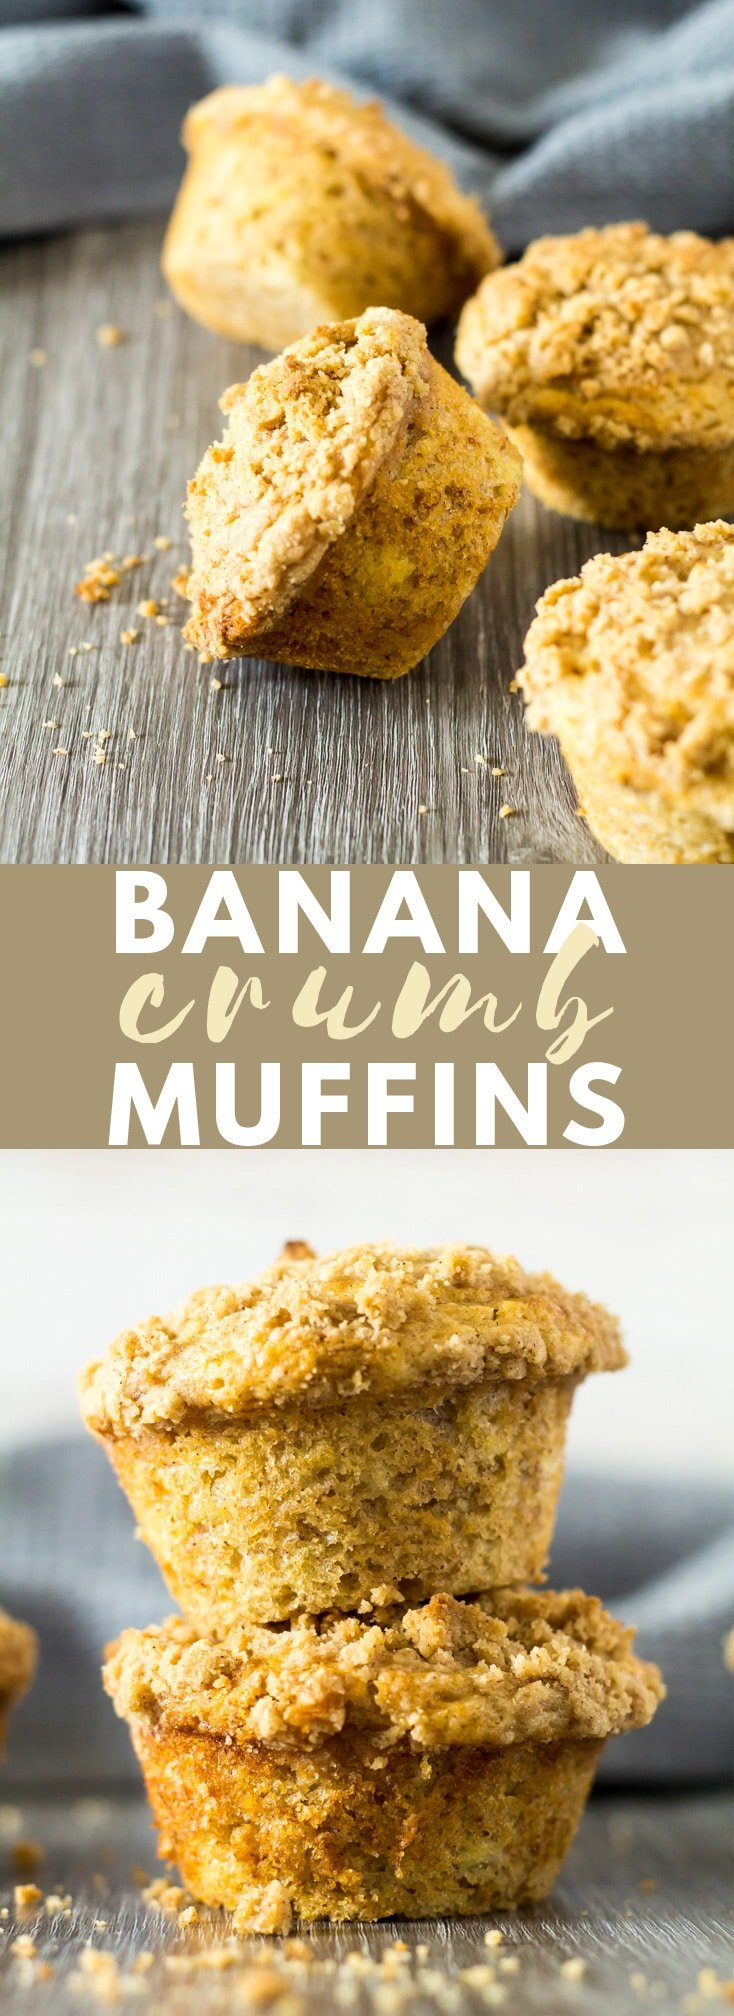 Banana Crumb Muffins - Deliciously moist and fluffy cinnamon-spiced muffins that are loaded with banana flavour, and topped with a buttery crumb. Perfect for an indulgent breakfast or snack!